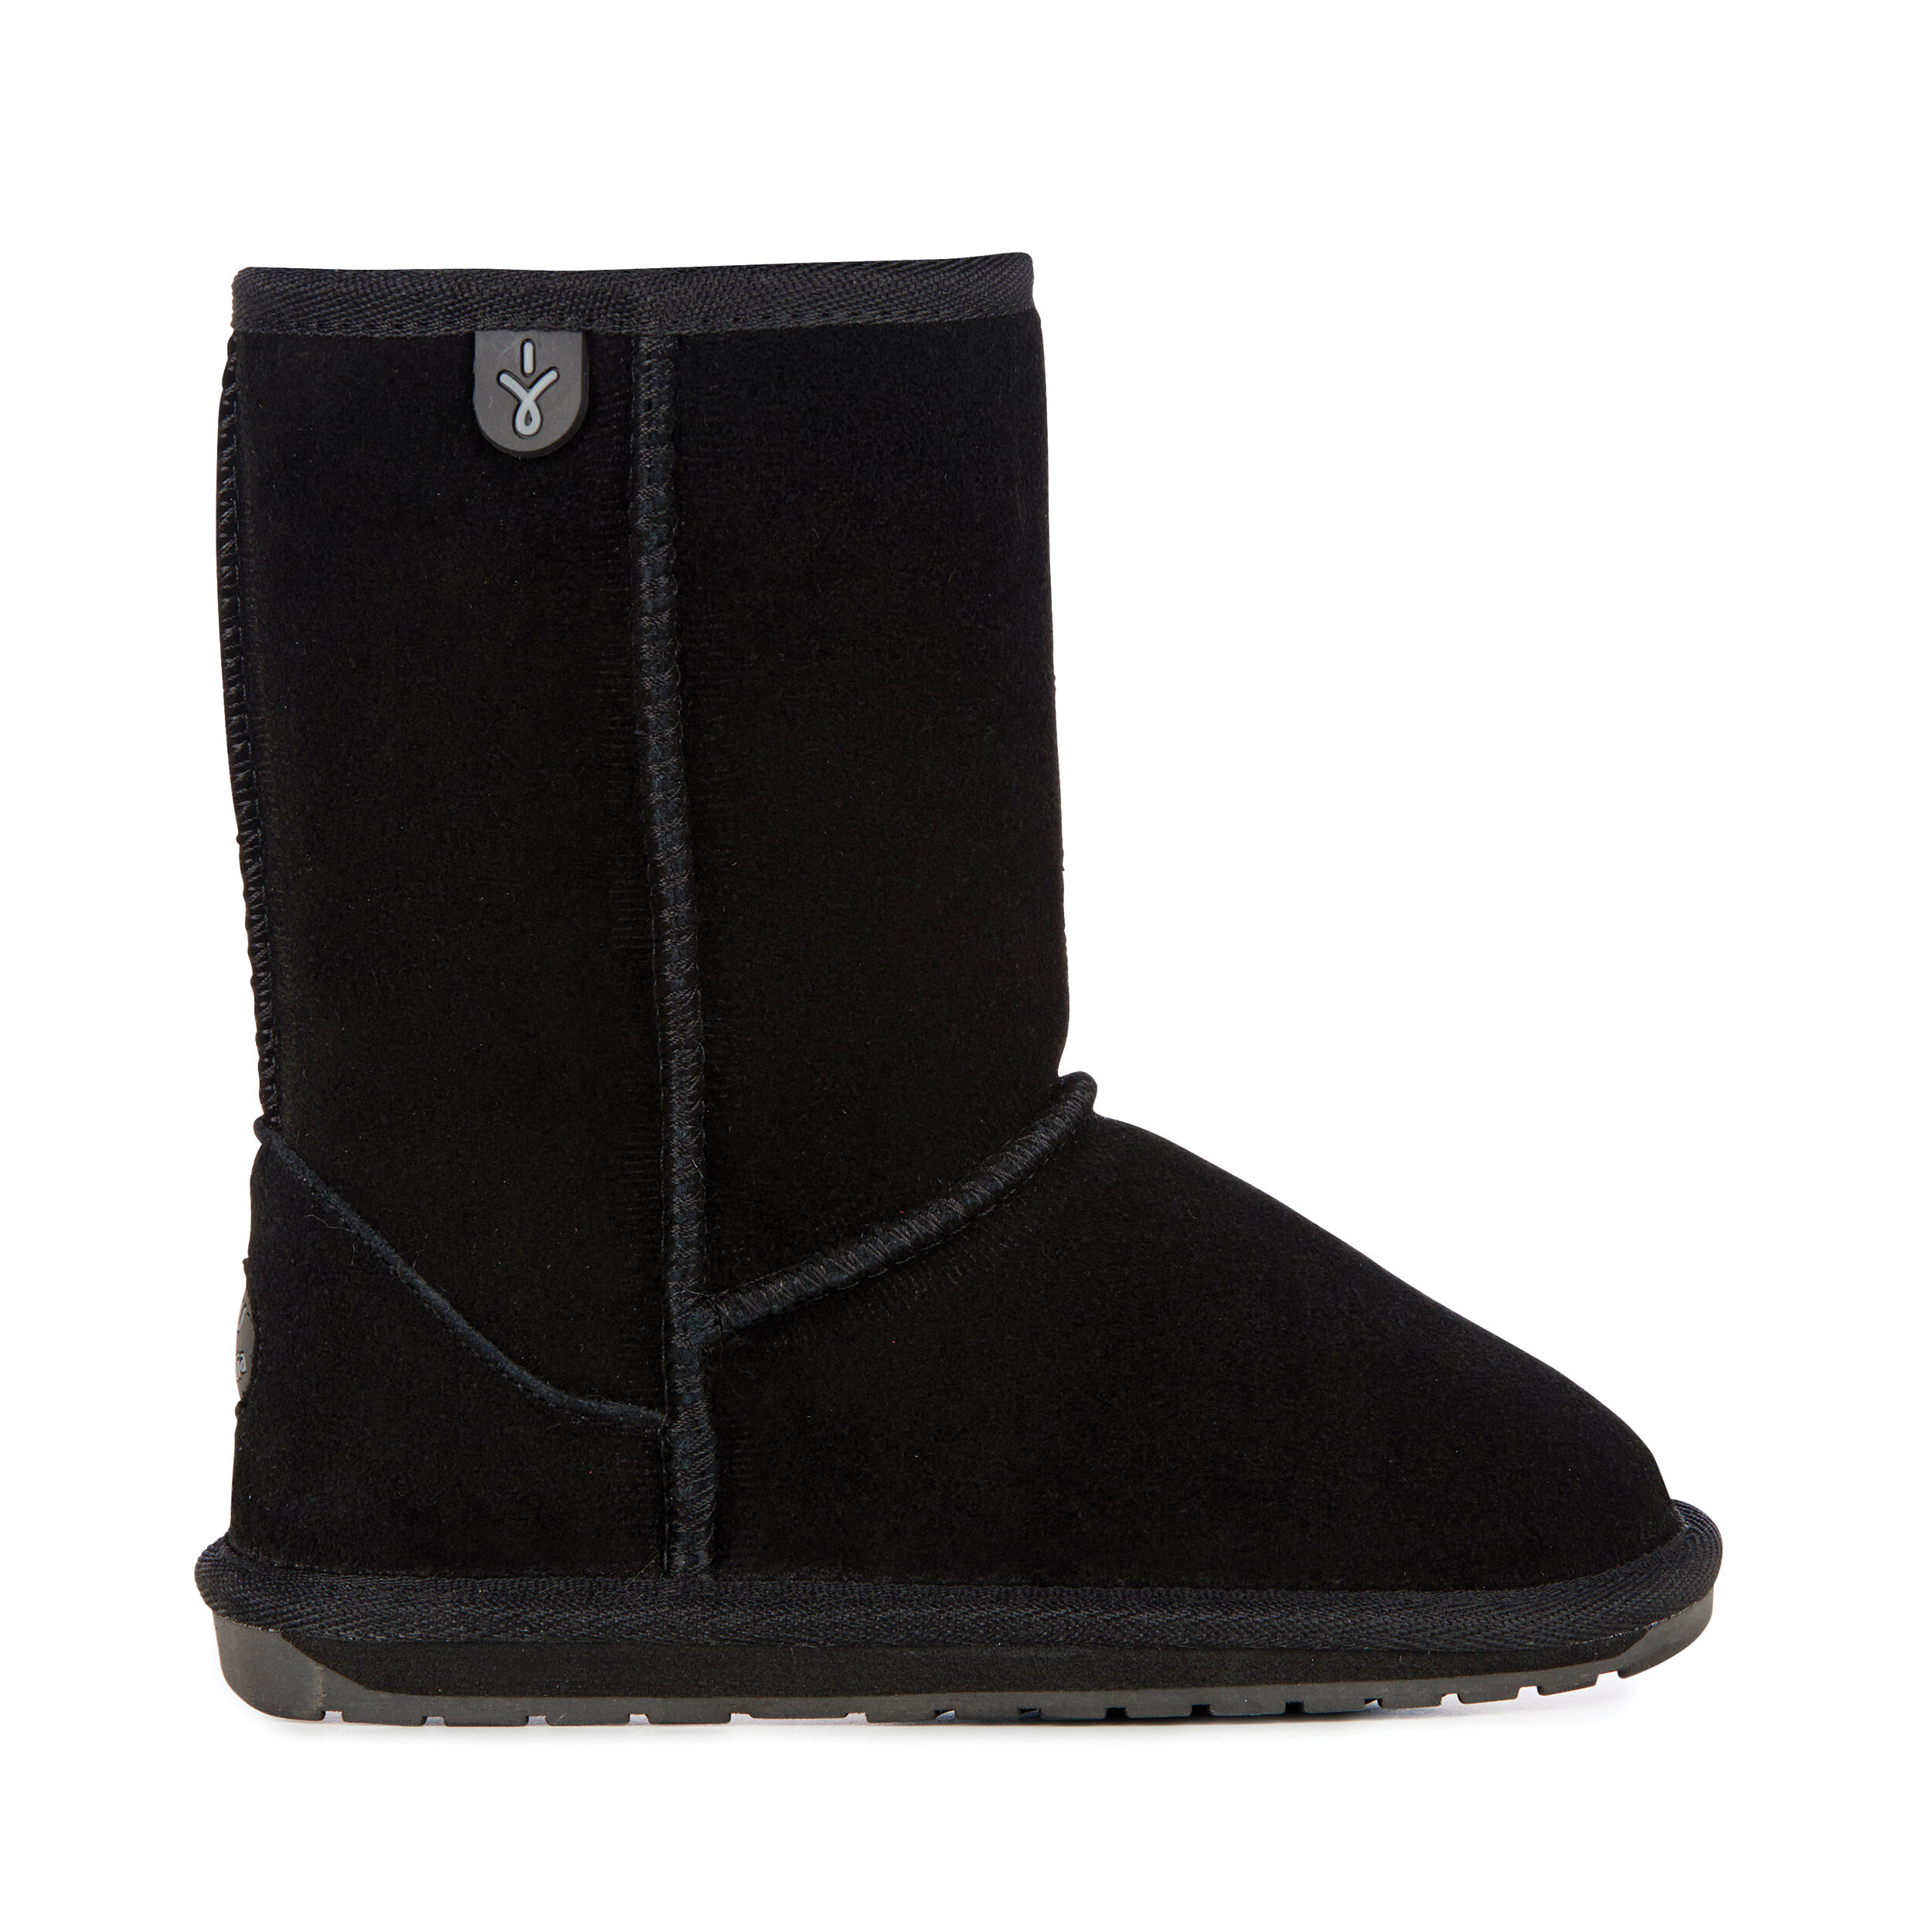 Sheepskin Boots and Shoes for Children